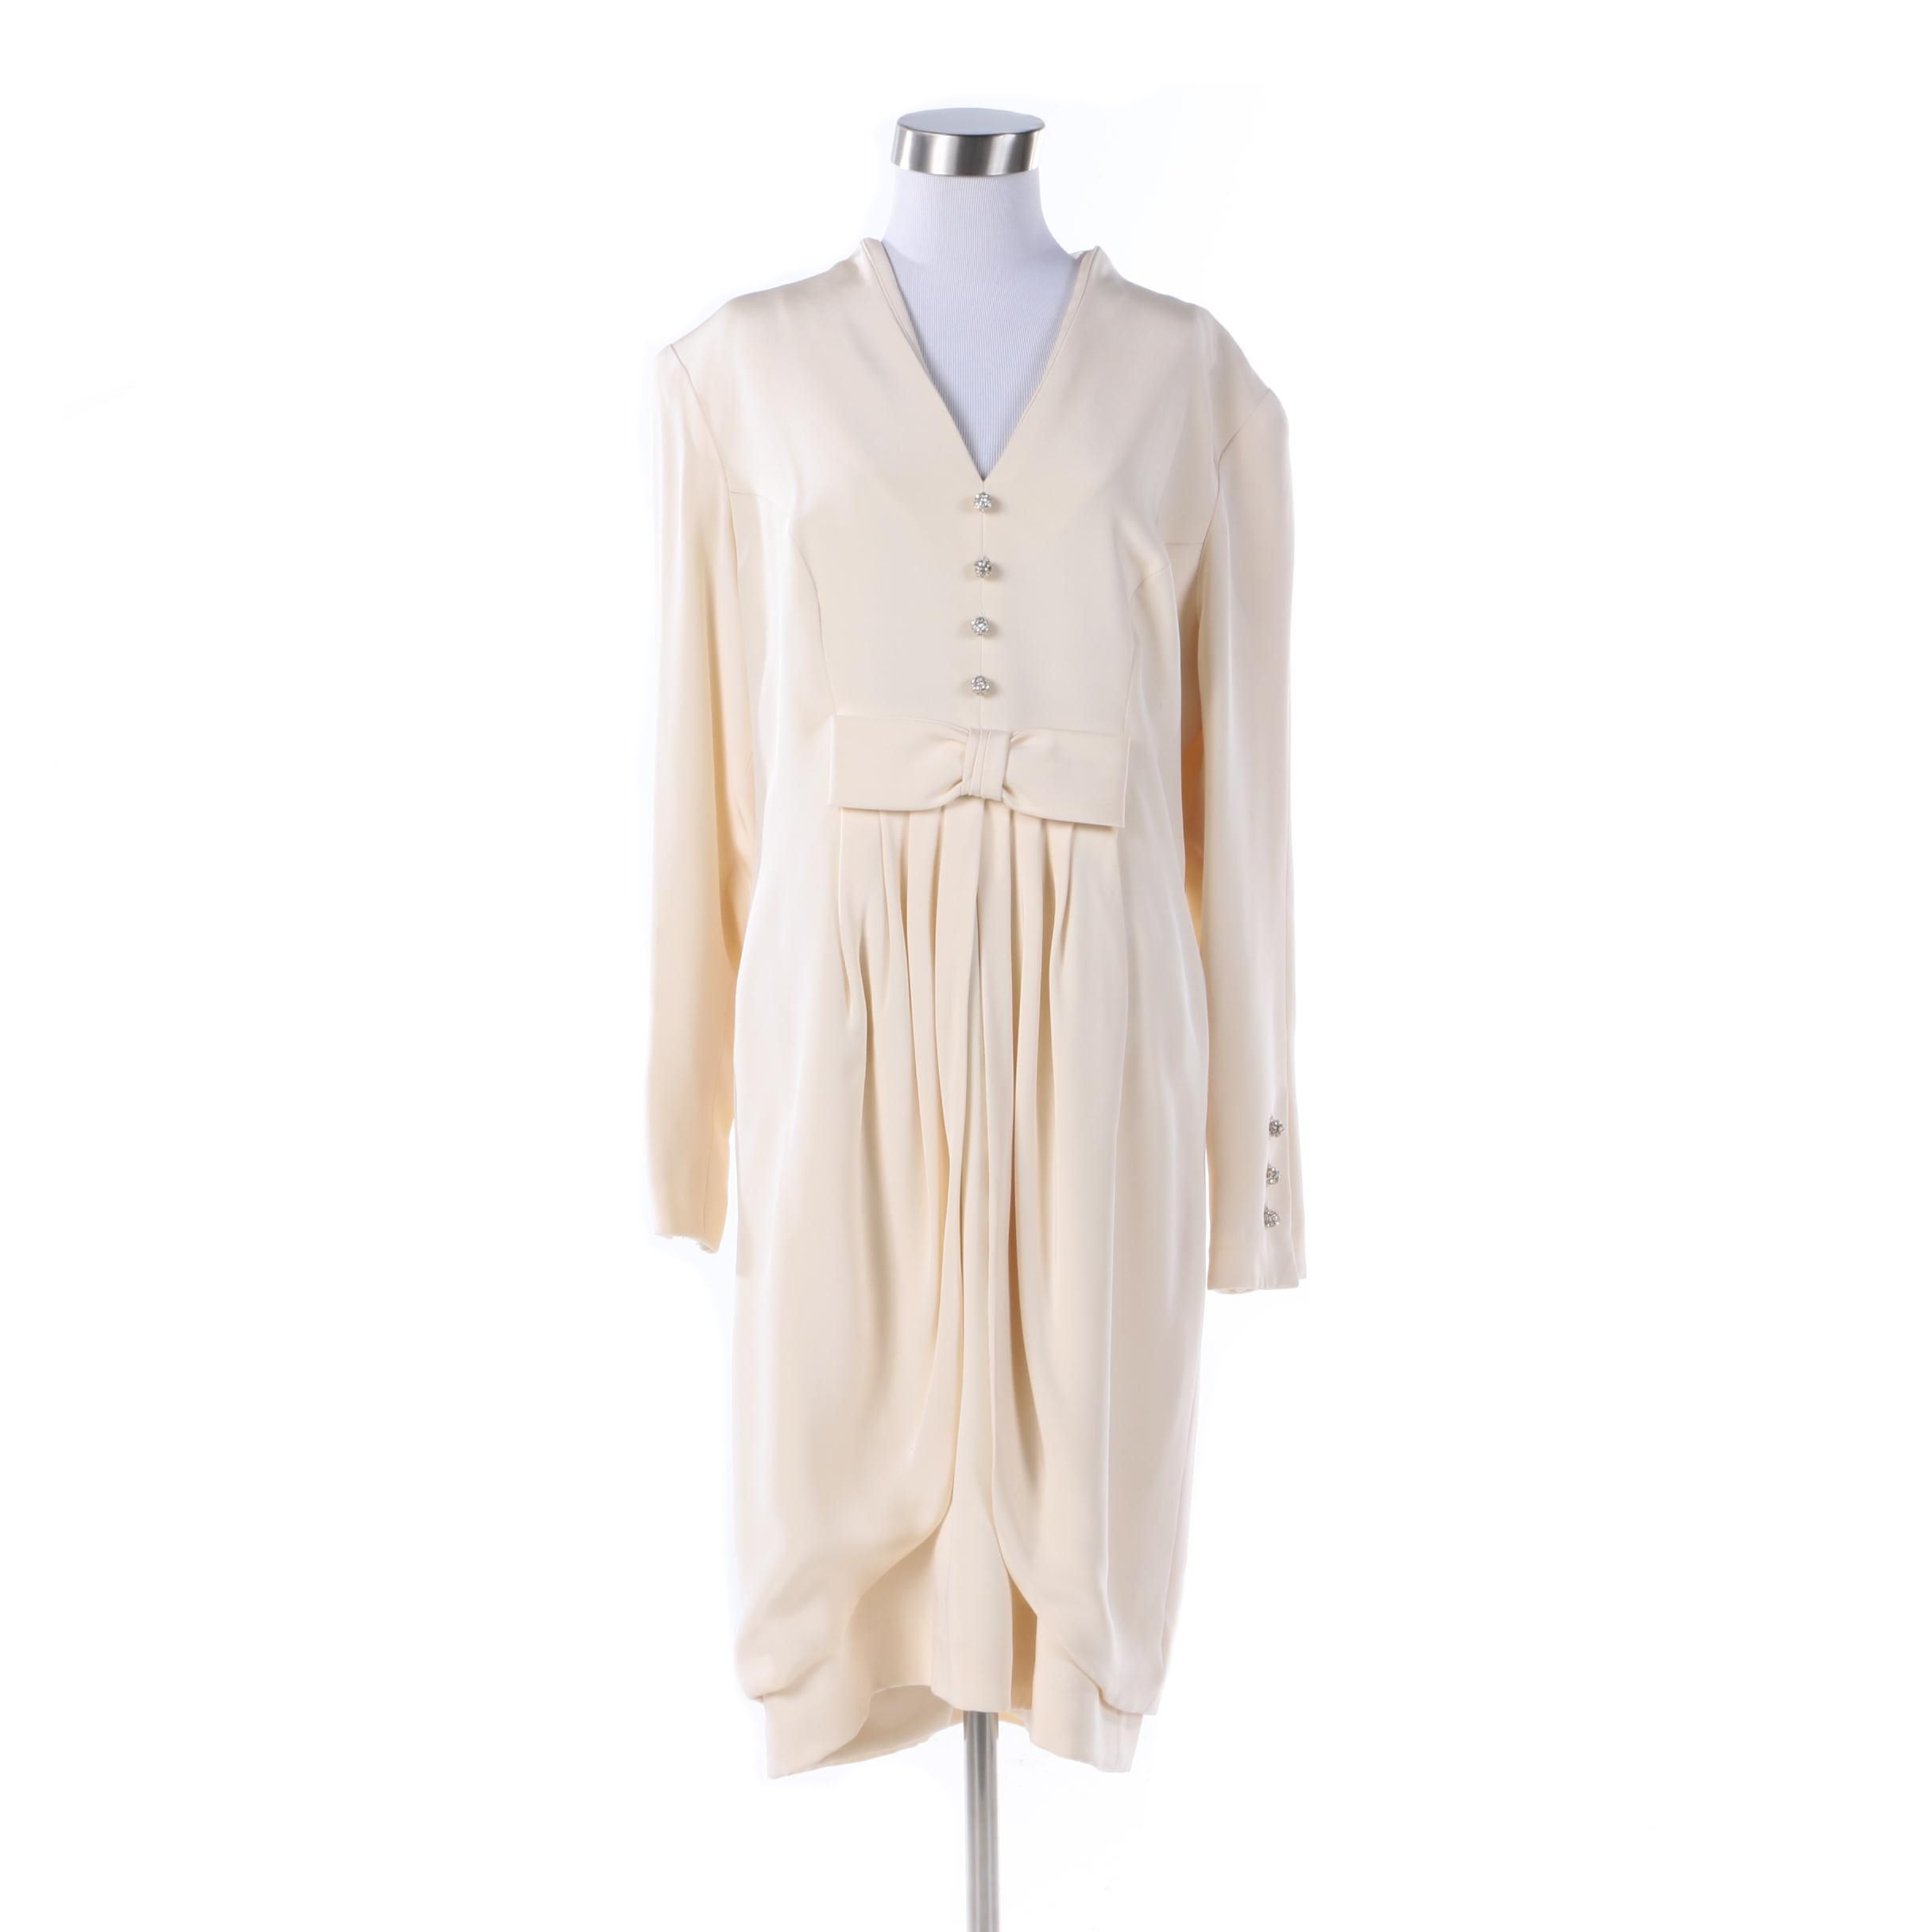 Vintage Travilla Cream-Colored Dress with Bow and Rhinestone Buttons